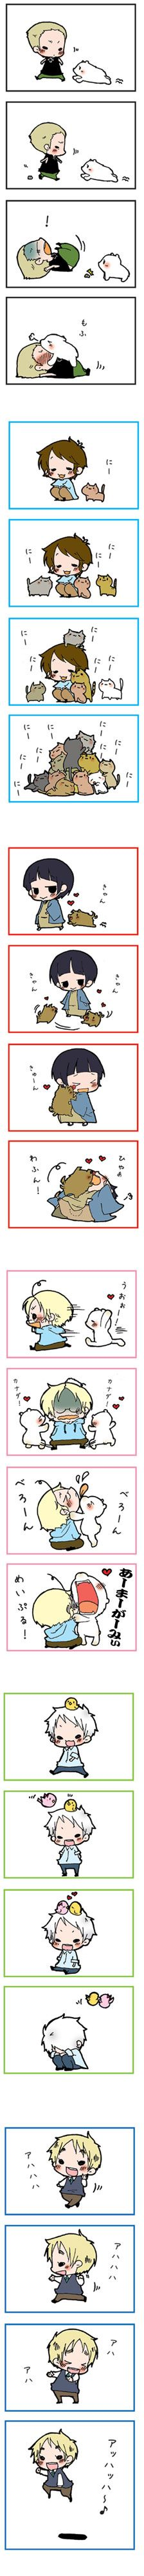 Hetalia characters' interactions with various animals (I think Ludwig's with Knut the polar bear, and Arthur's with flying mint bunny) - Art by Roomleader